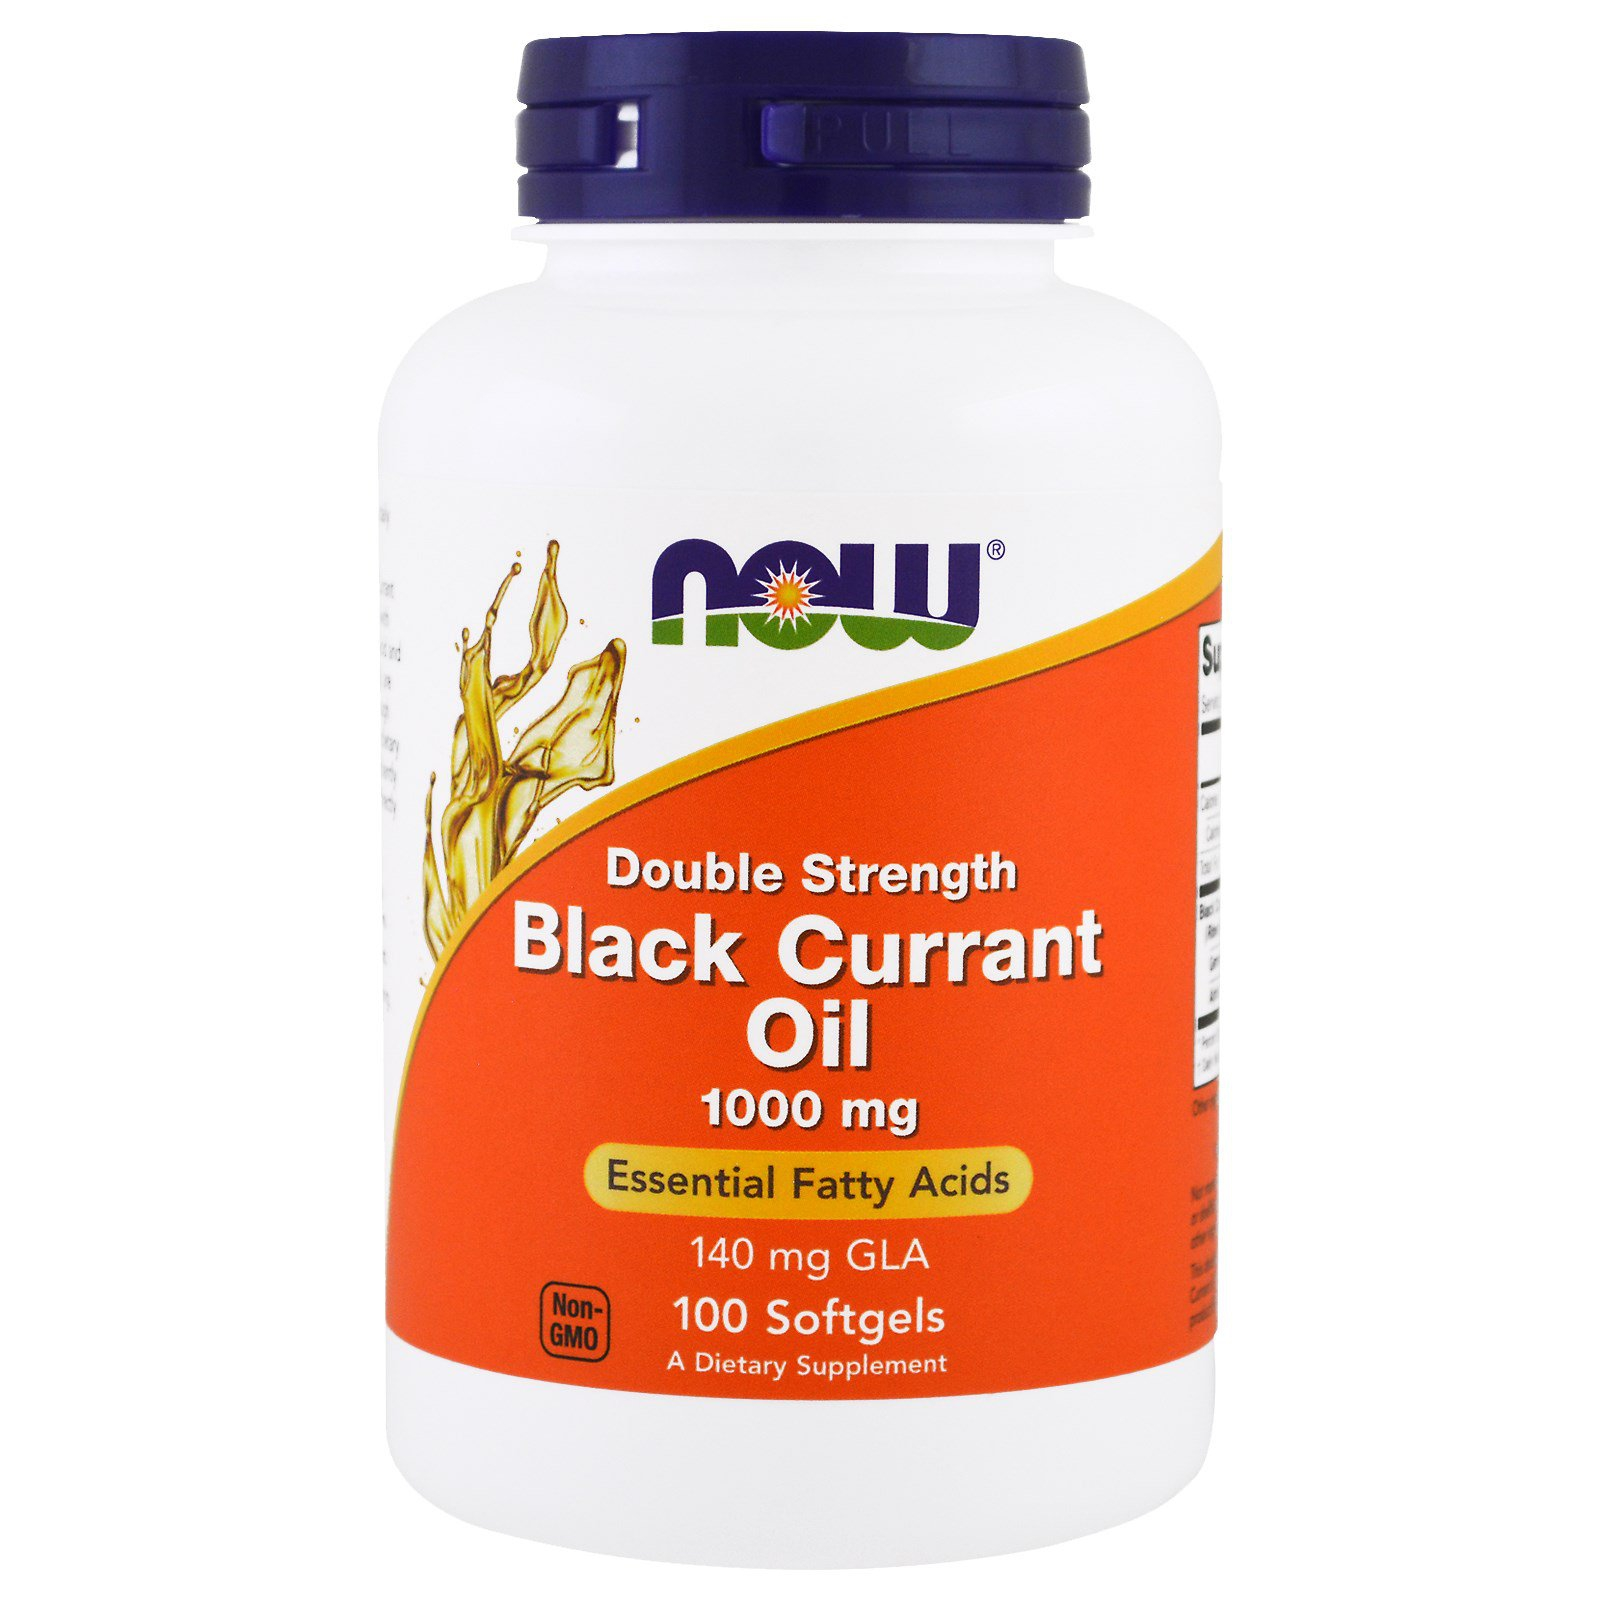 Image of Black Currant Oil Double Strength 1000 mg (100 softgels) - Now Foods 0733739017178